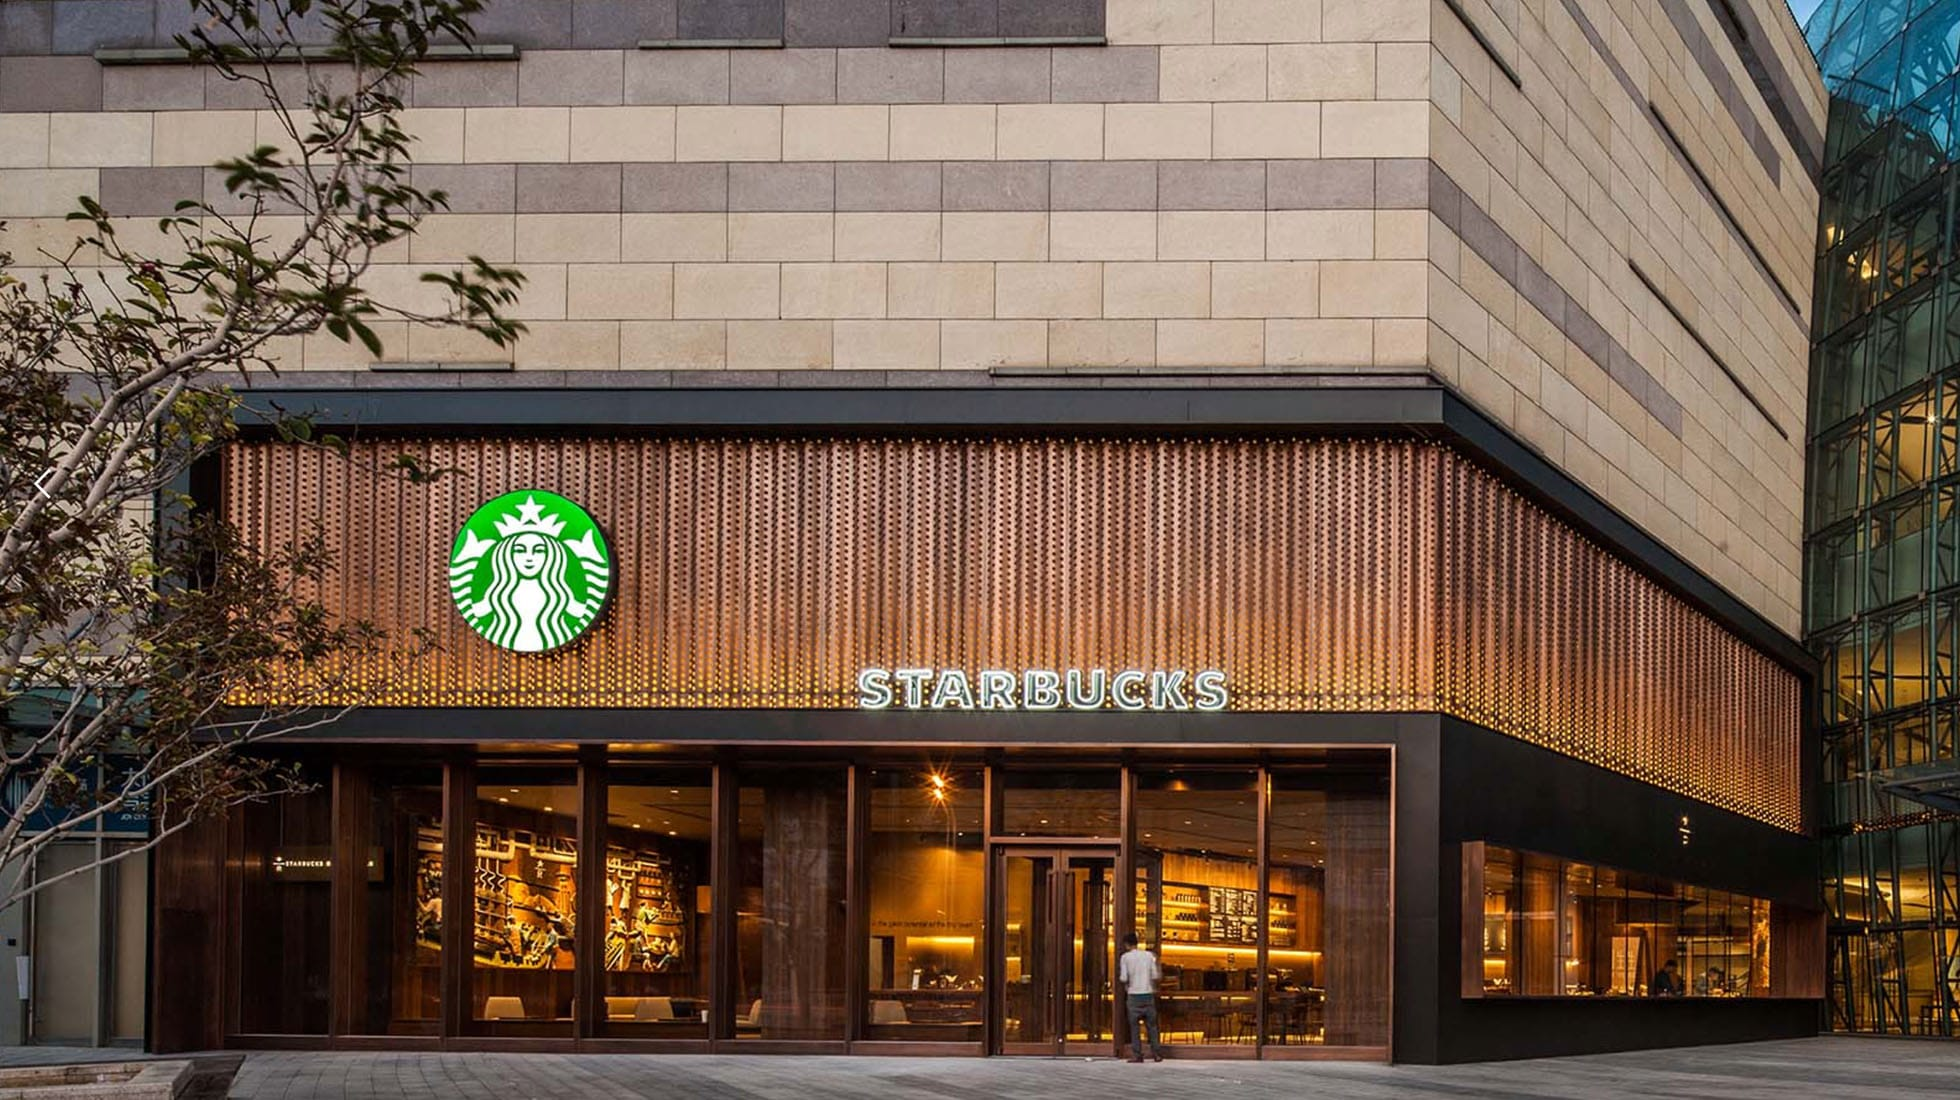 Outside of a Starbucks store in Tianjin, China